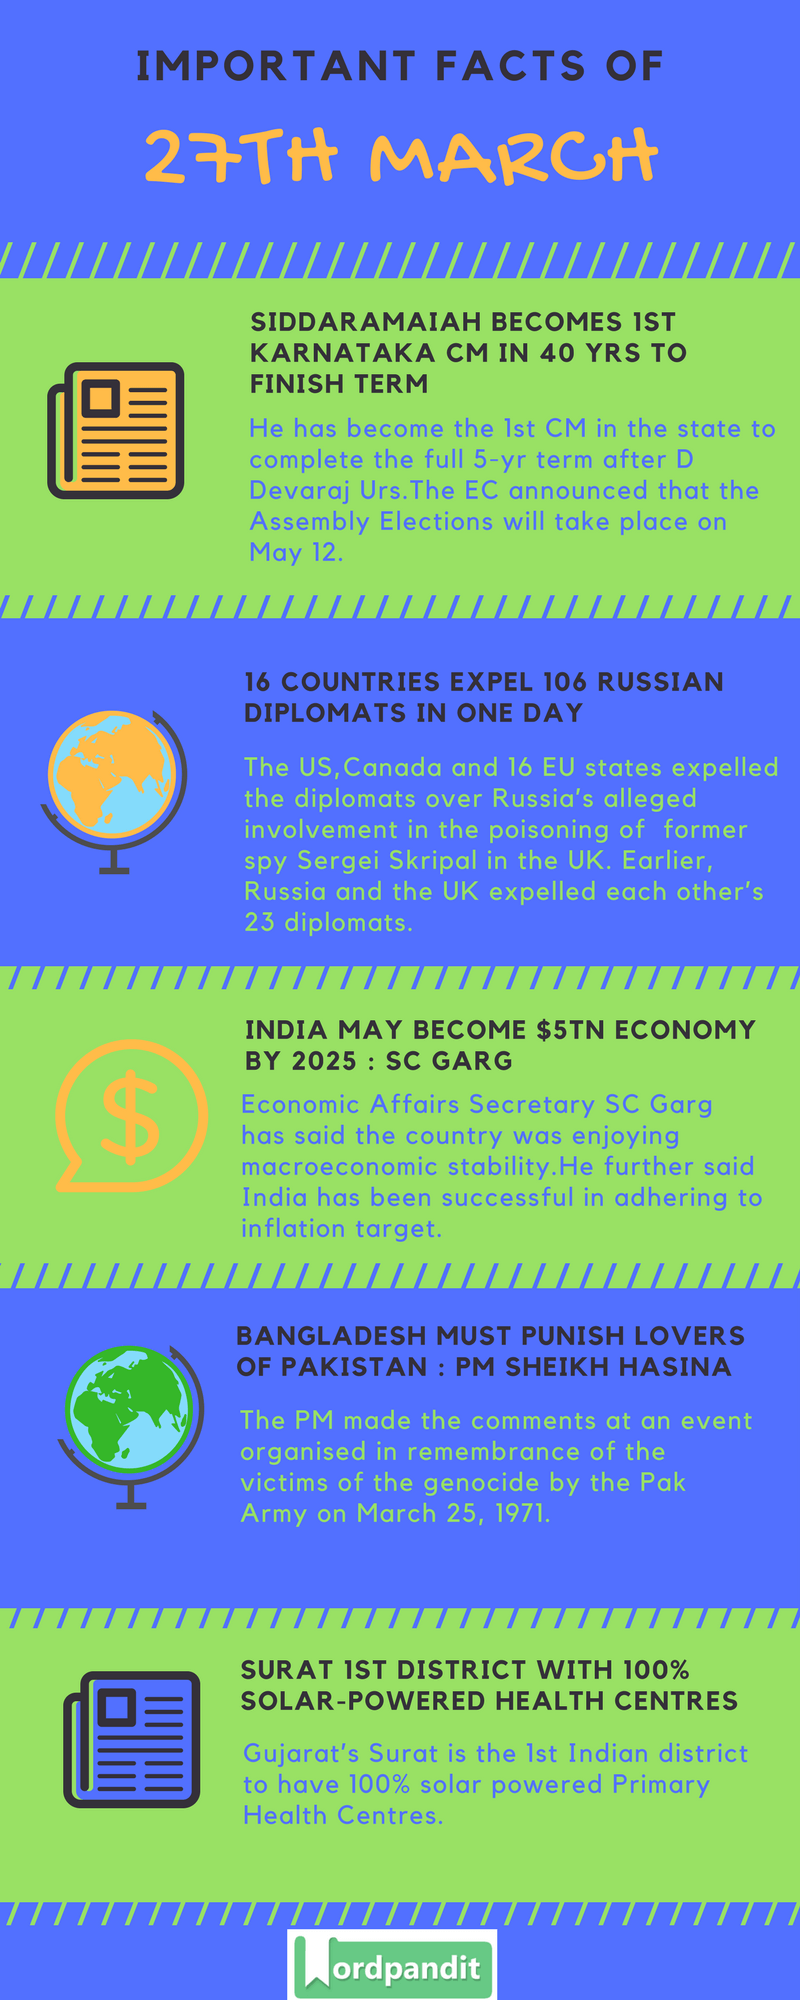 Daily Current Affairs 27 March 2018 Current Affairs Quiz March 27 2018 Current Affairs Infographic